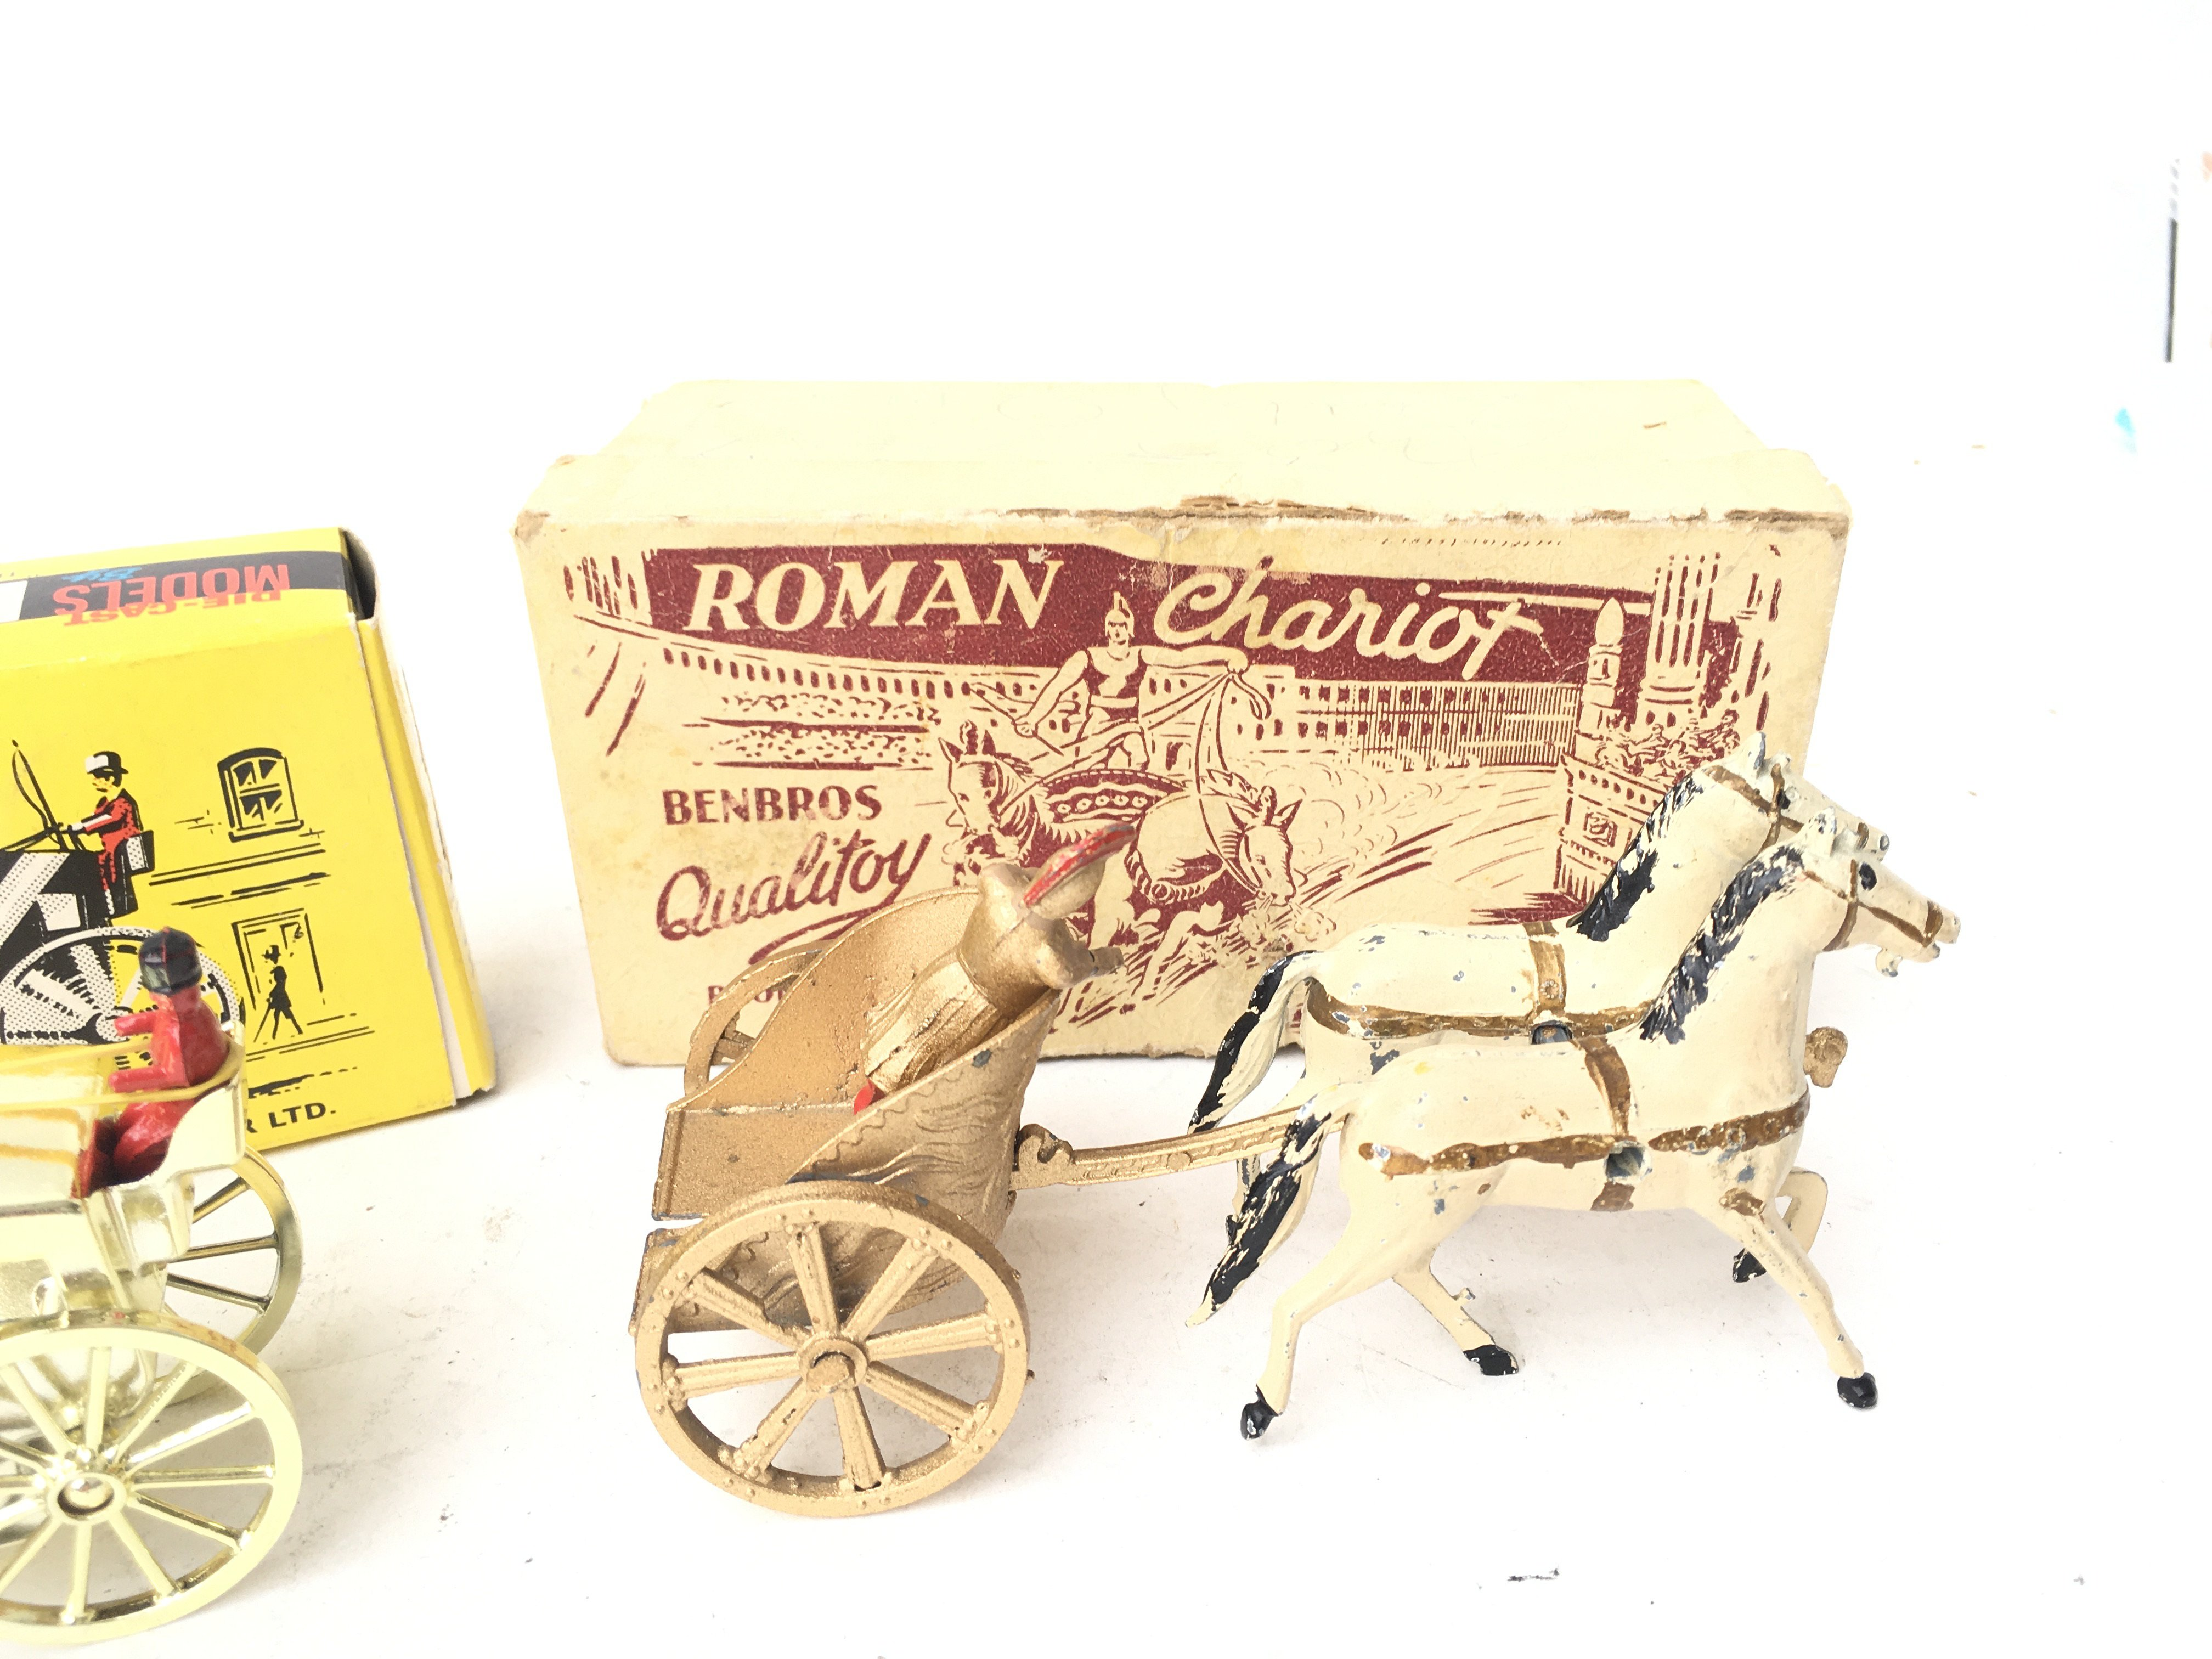 A Boxed Budgie Hanson Cab and a BenBros Boxed Roman Chariot. - Image 3 of 3